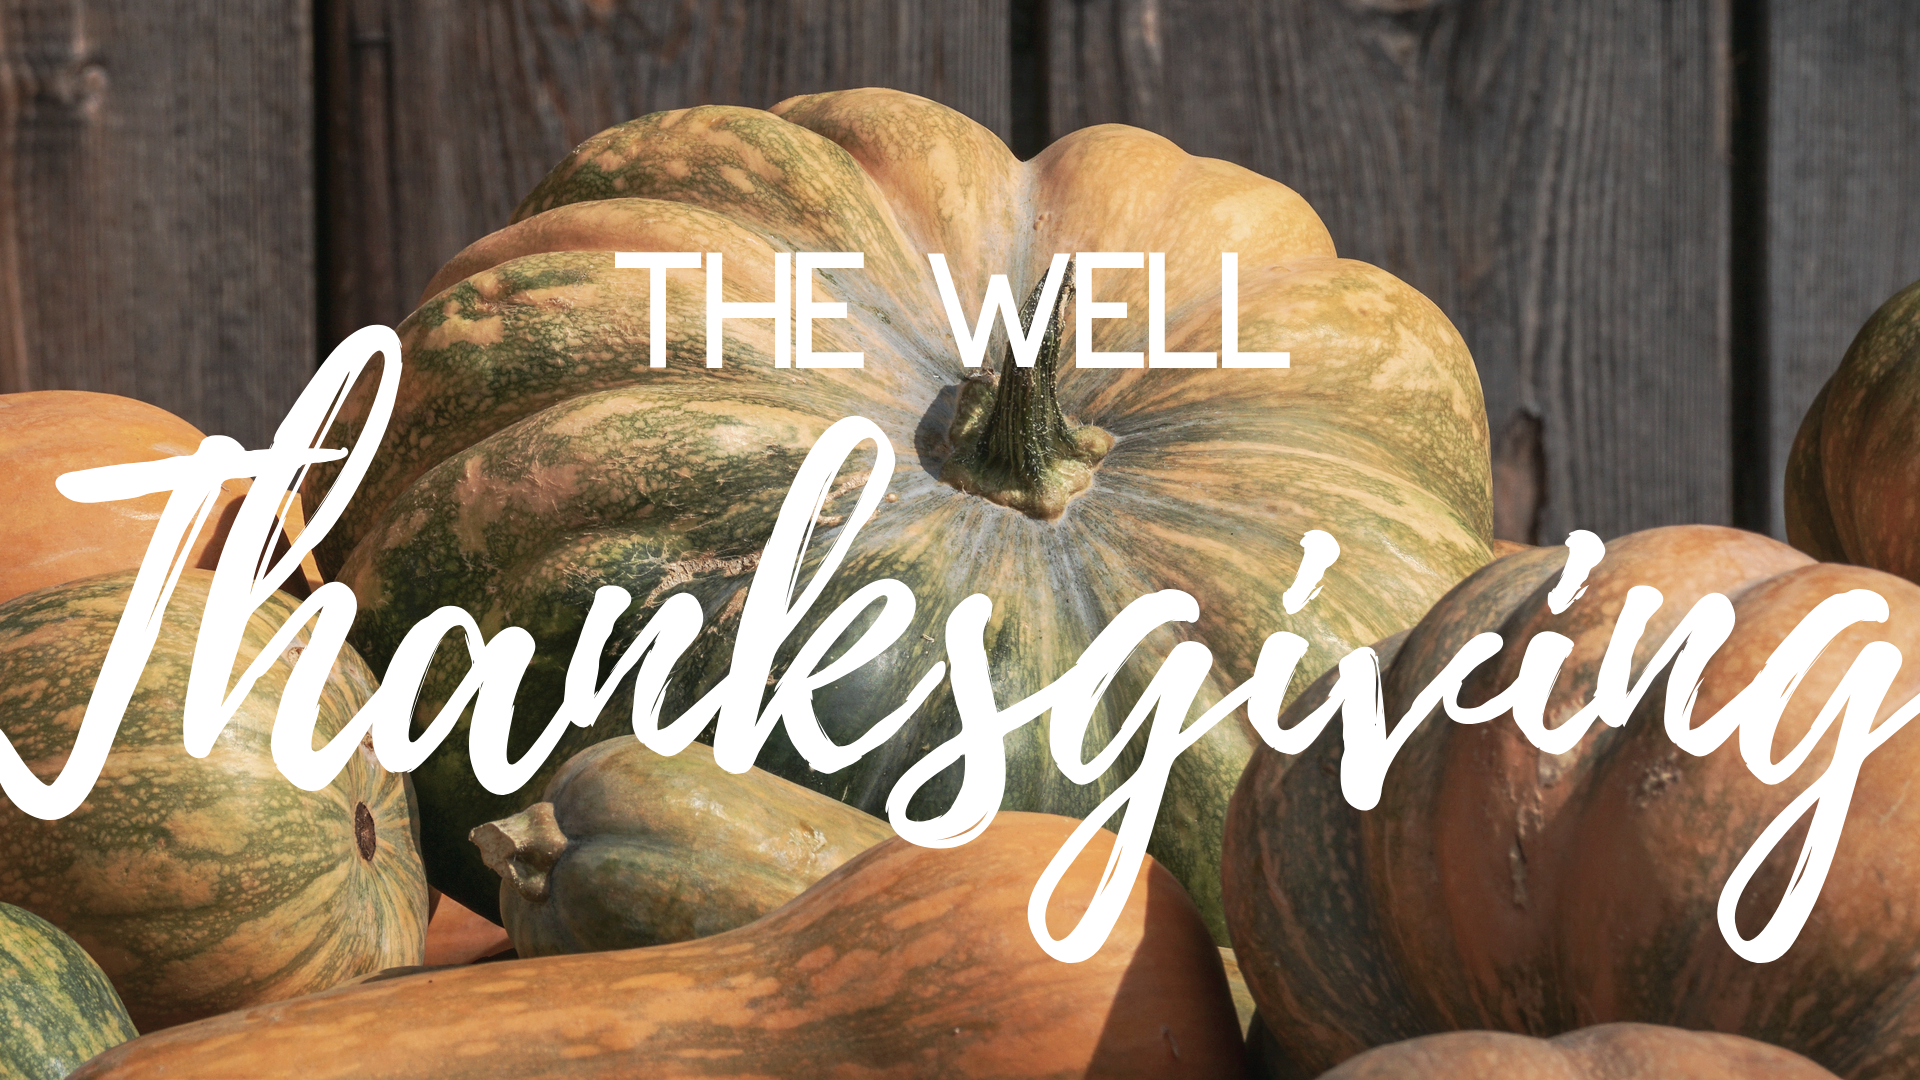 Copy of The Well Thanksgiving redo.png